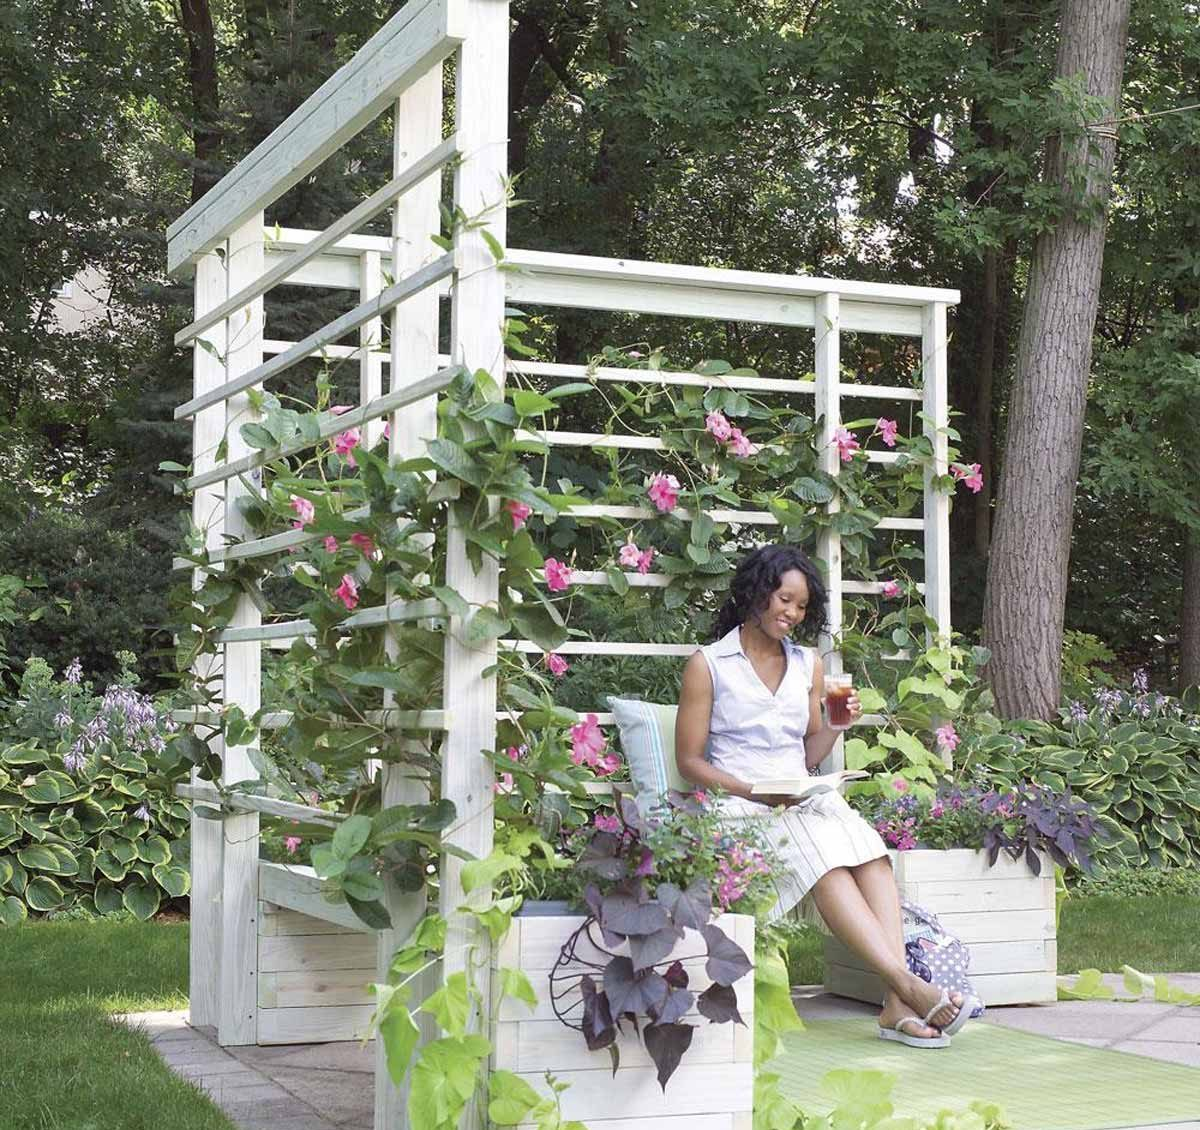 woman sitting on bench with hanging flowers